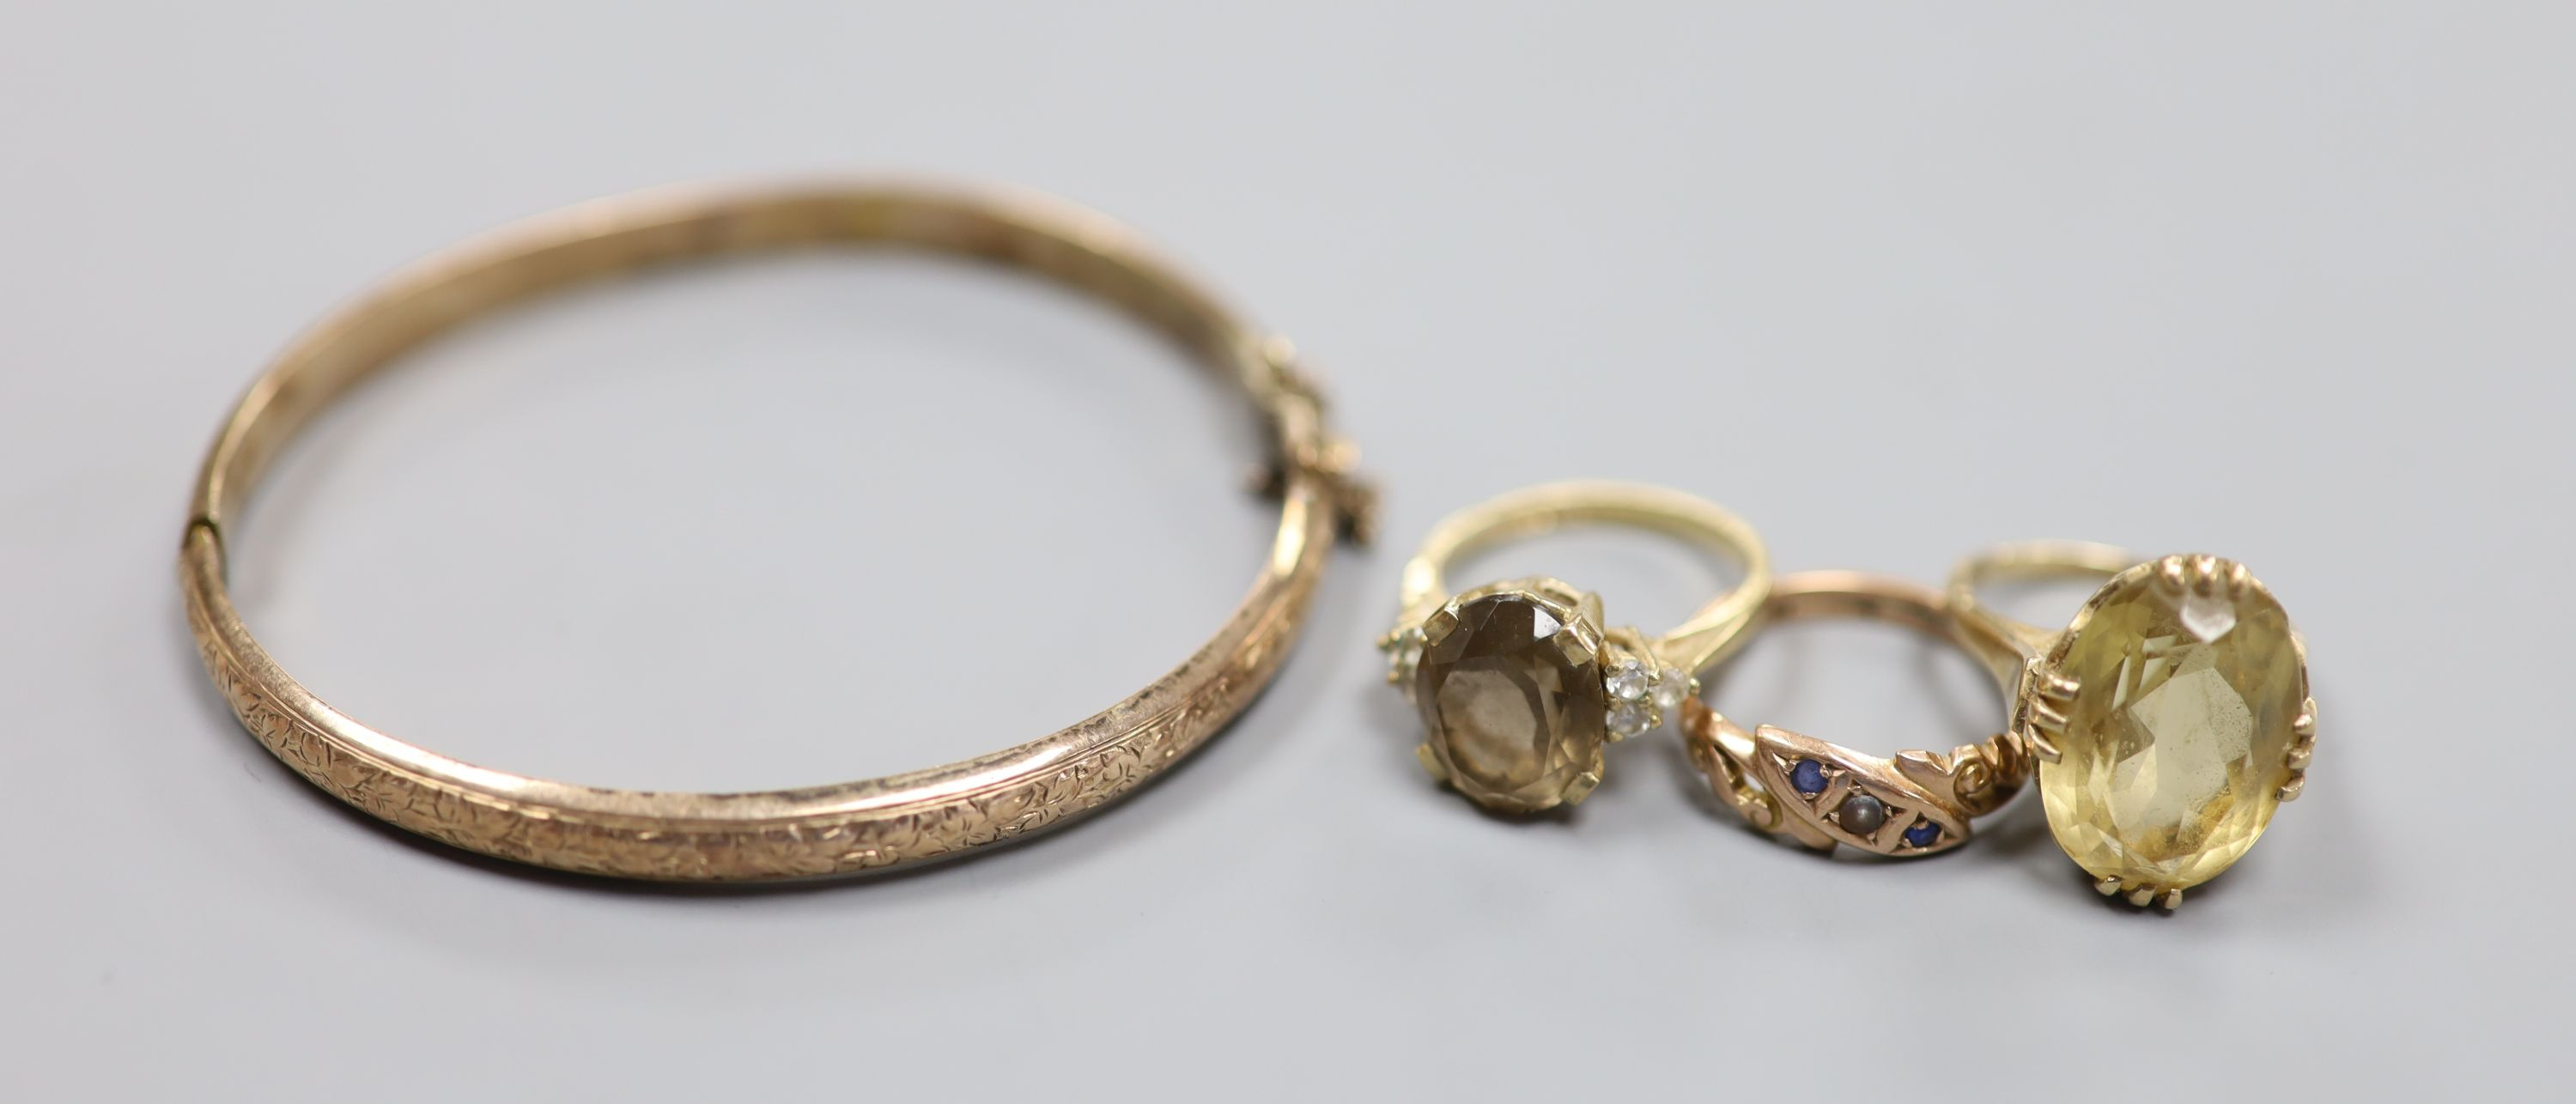 Three assorted 9ct and gem set rings and a 9ct gold hinged bangle,gross 18.1 grams.